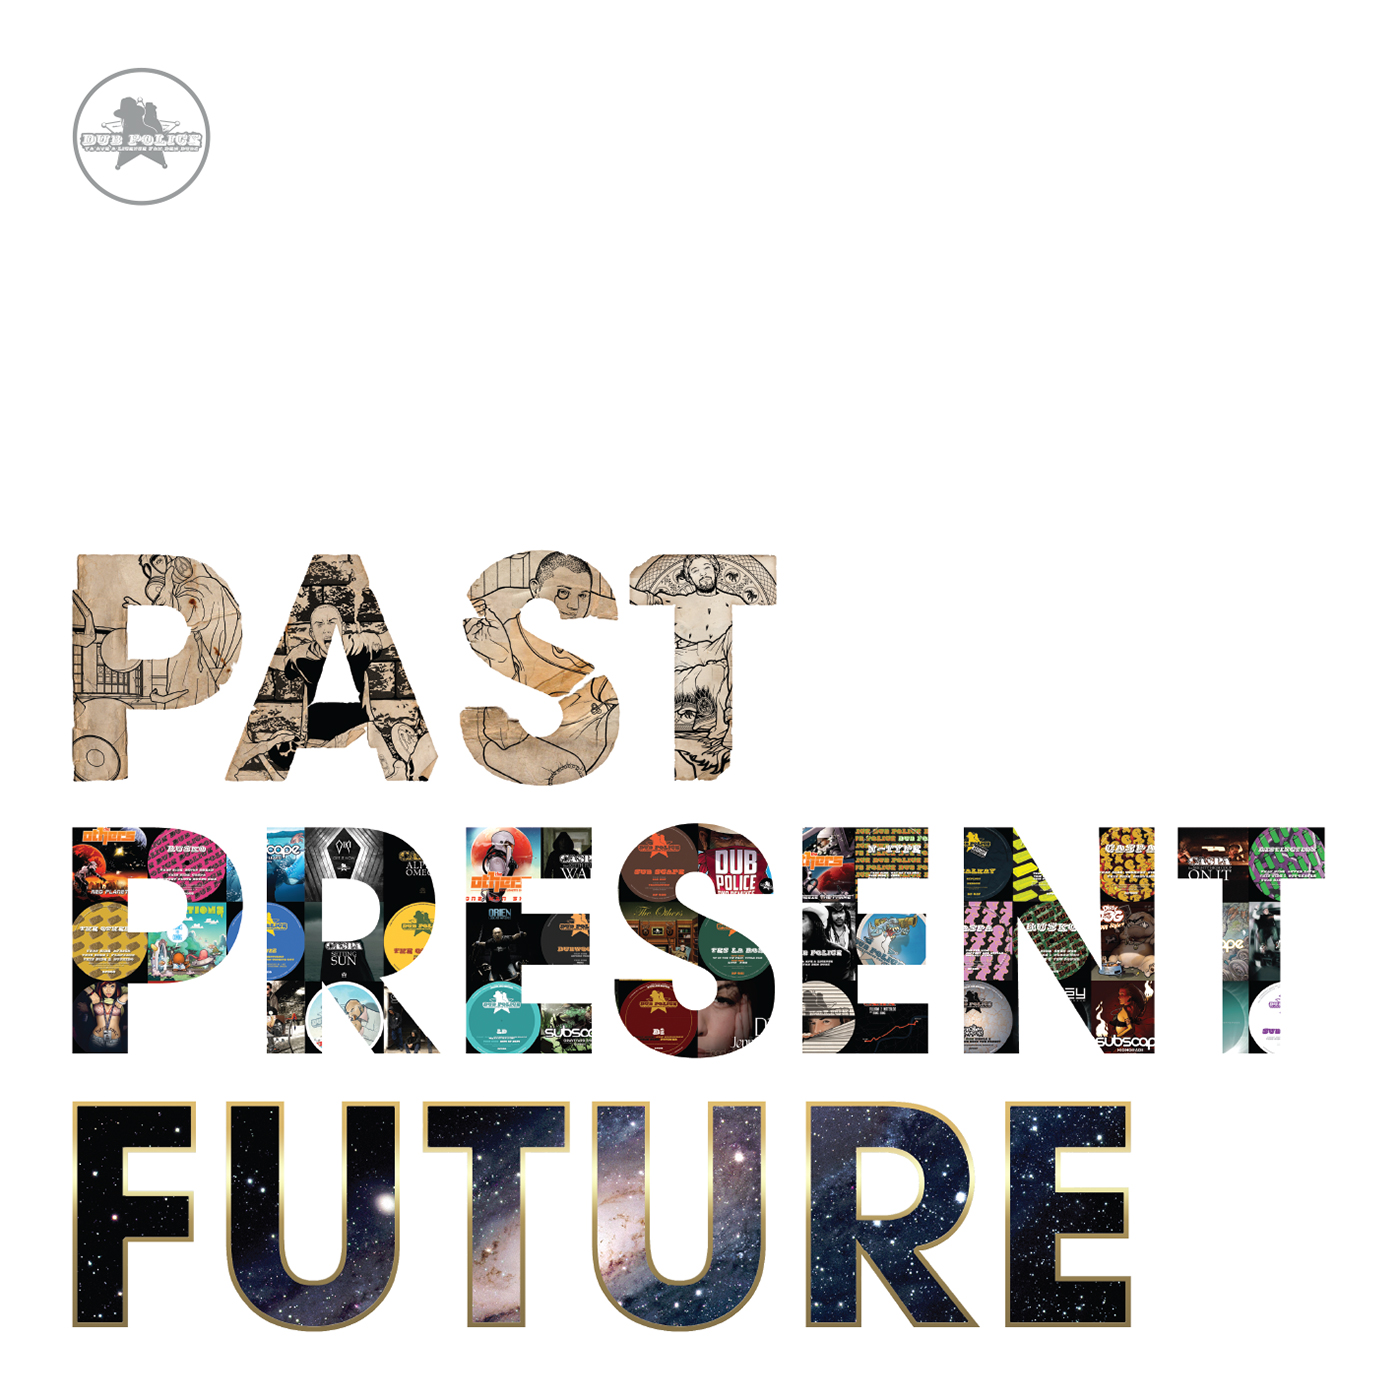 DPCD008: PAST PRESENT FUTURE (DIGITAL & CD)